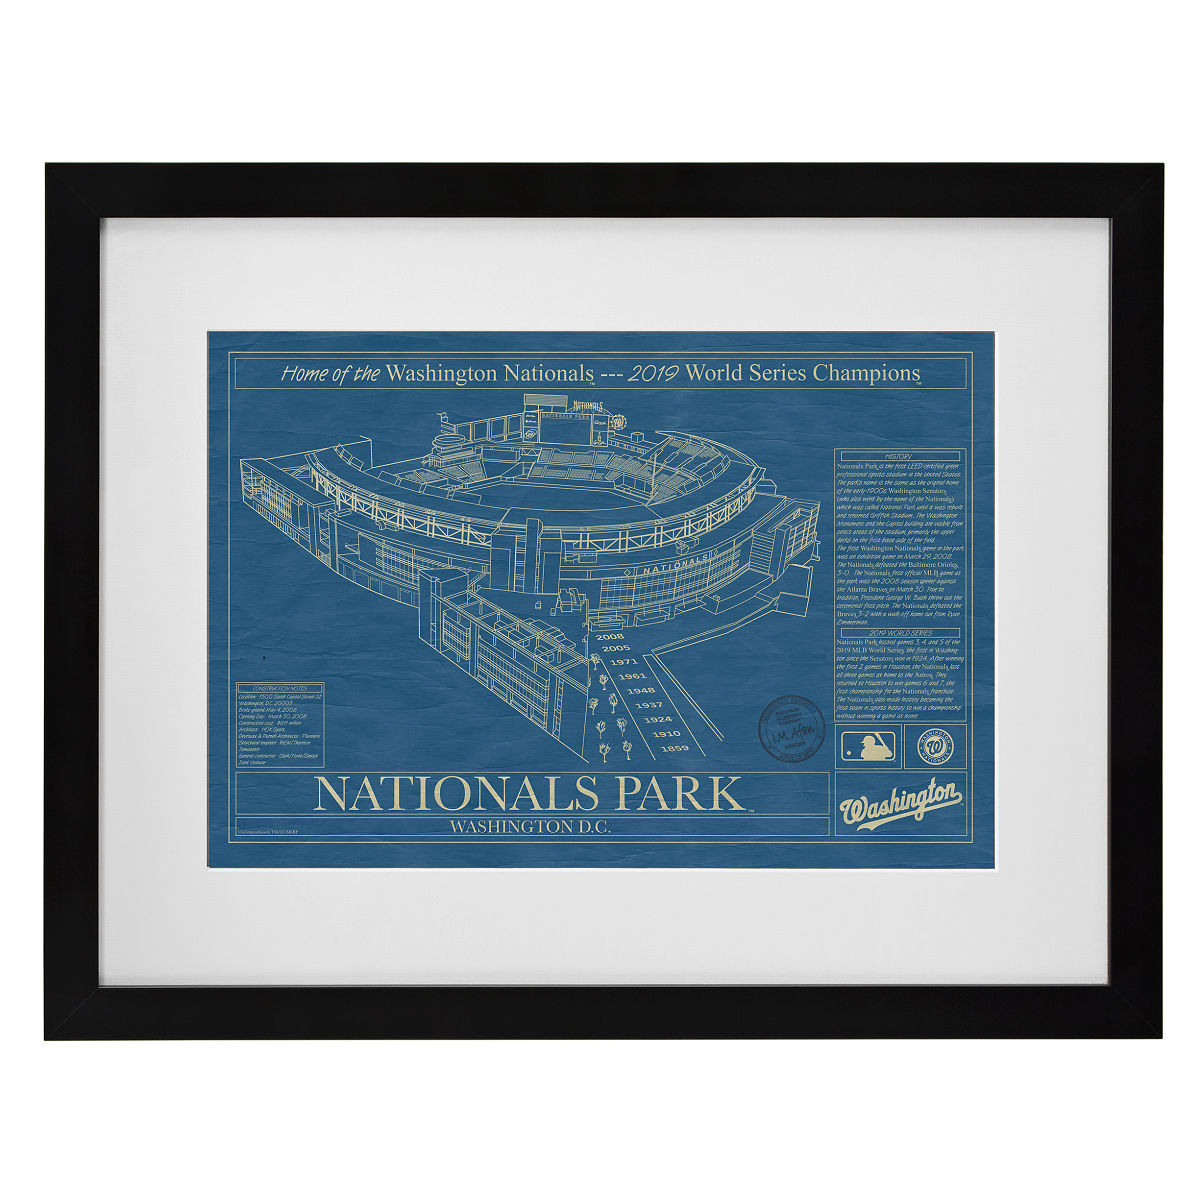 Baseball stadium blueprints baseball stadium art fenway park baseball stadium blueprints 2 thumbnail malvernweather Gallery